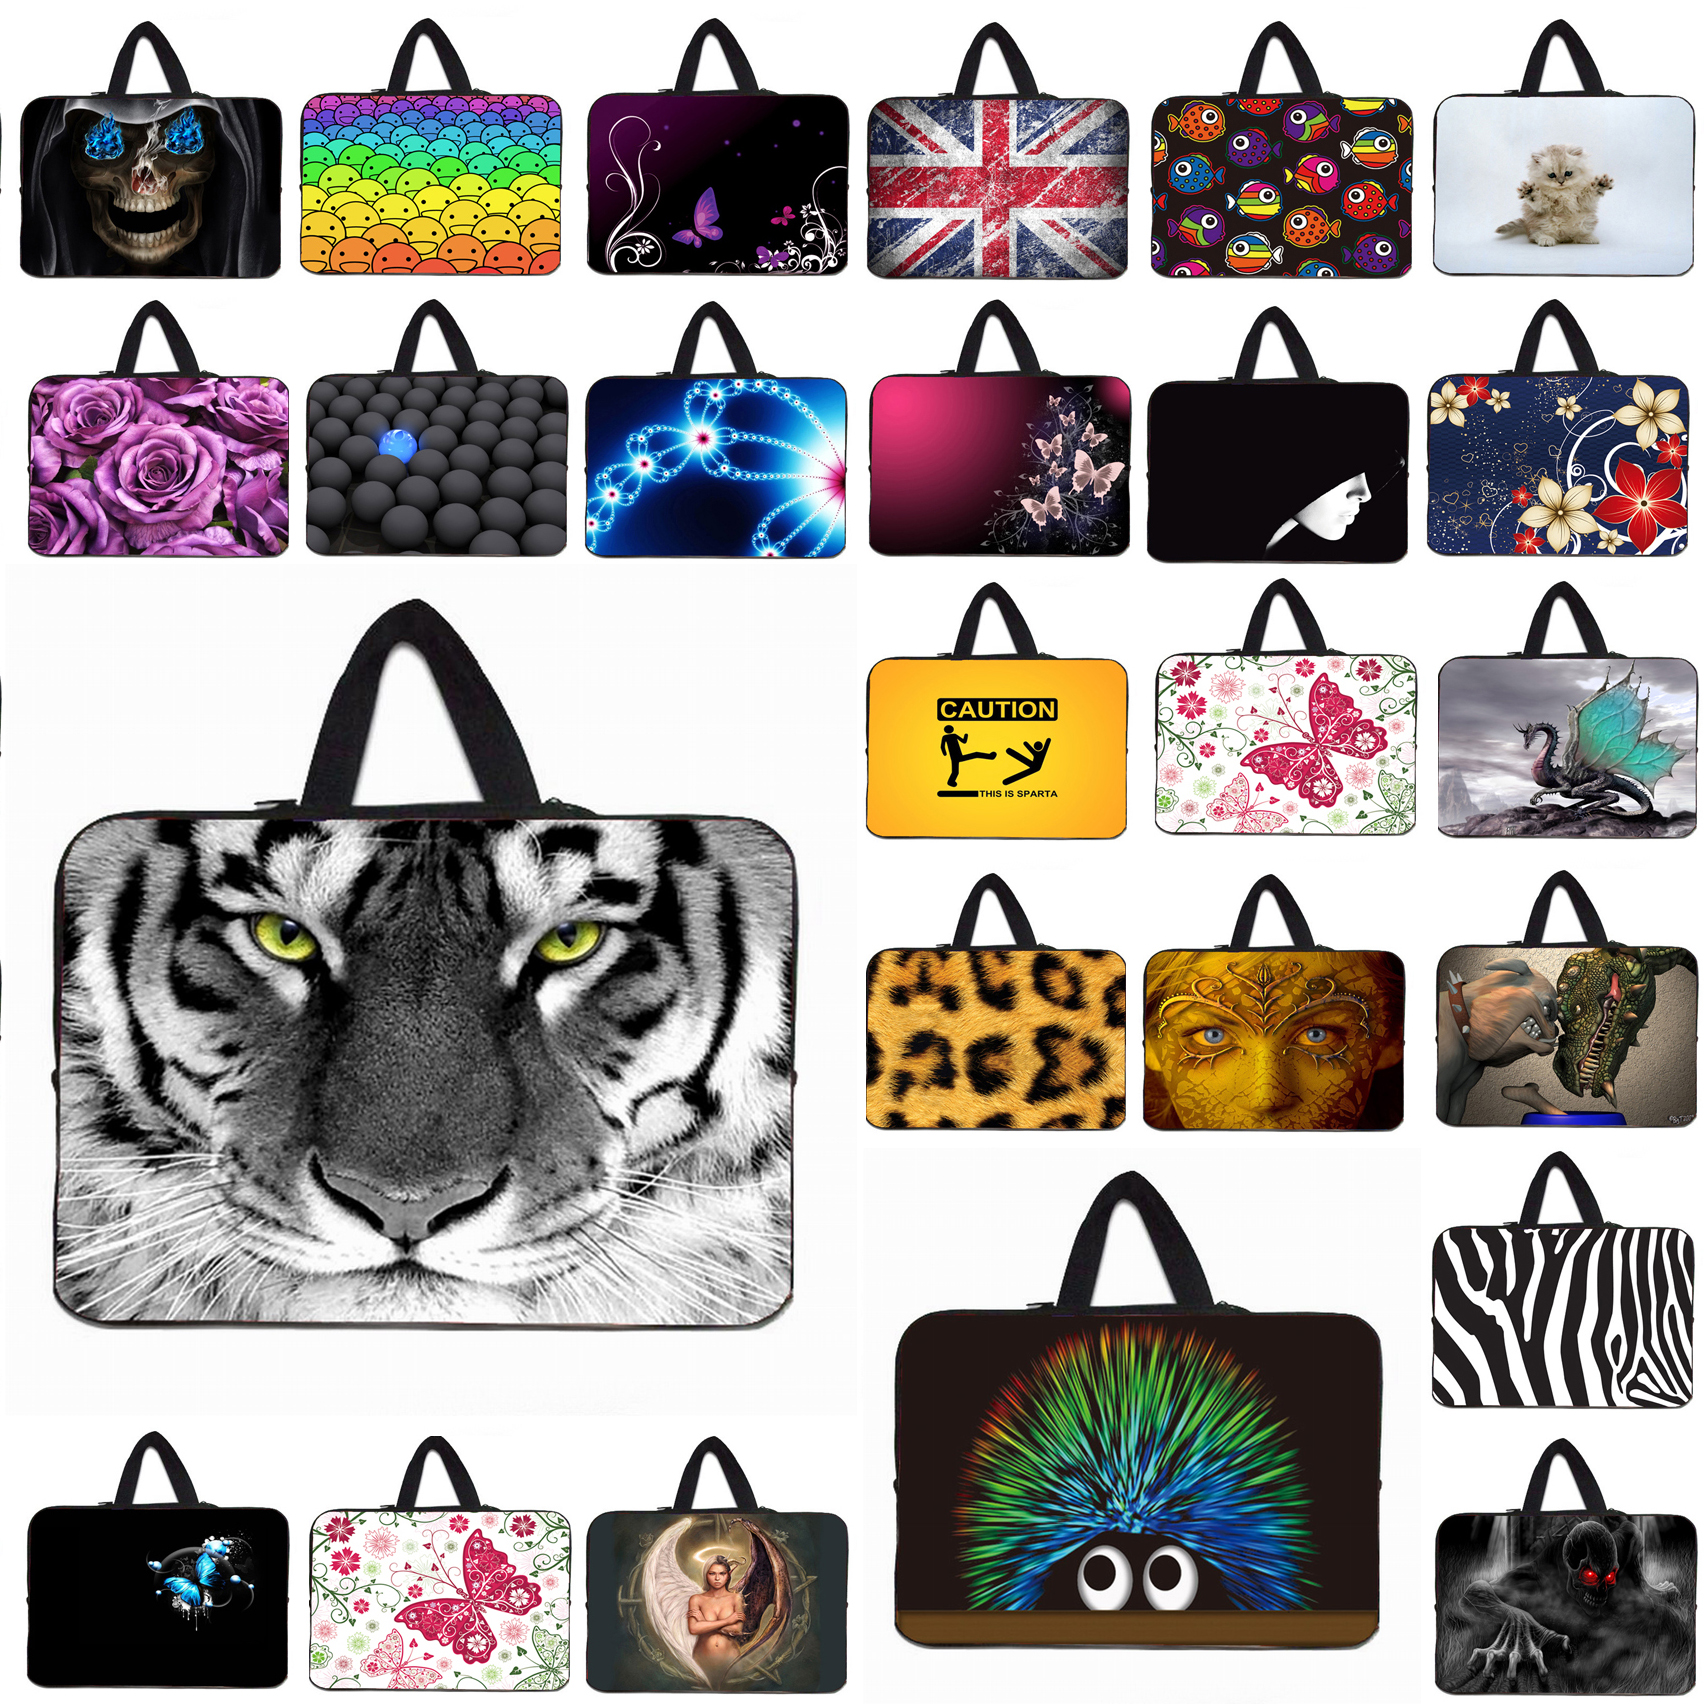 """Animal Notebook Tablet 10 10.1 12 13 14 Inch Zipper Inner Cases Bags For Macbook Pro/Air 11.6"""" 13.3"""" 15.4"""" 17.3"""" Laptop Bag 15.6(China (Mainland))"""